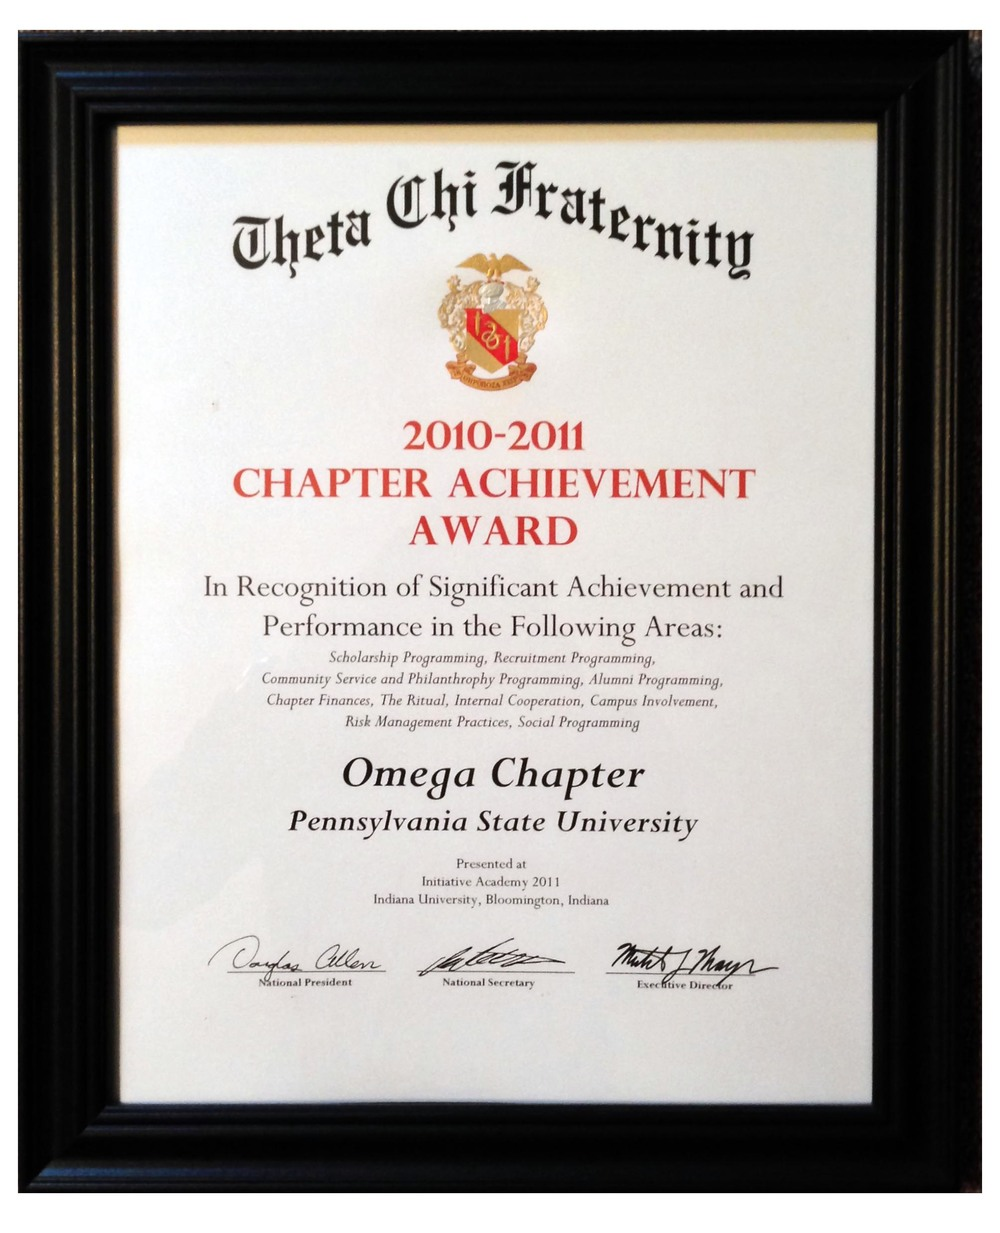 2010-2011 Chapter Achievement Award from National